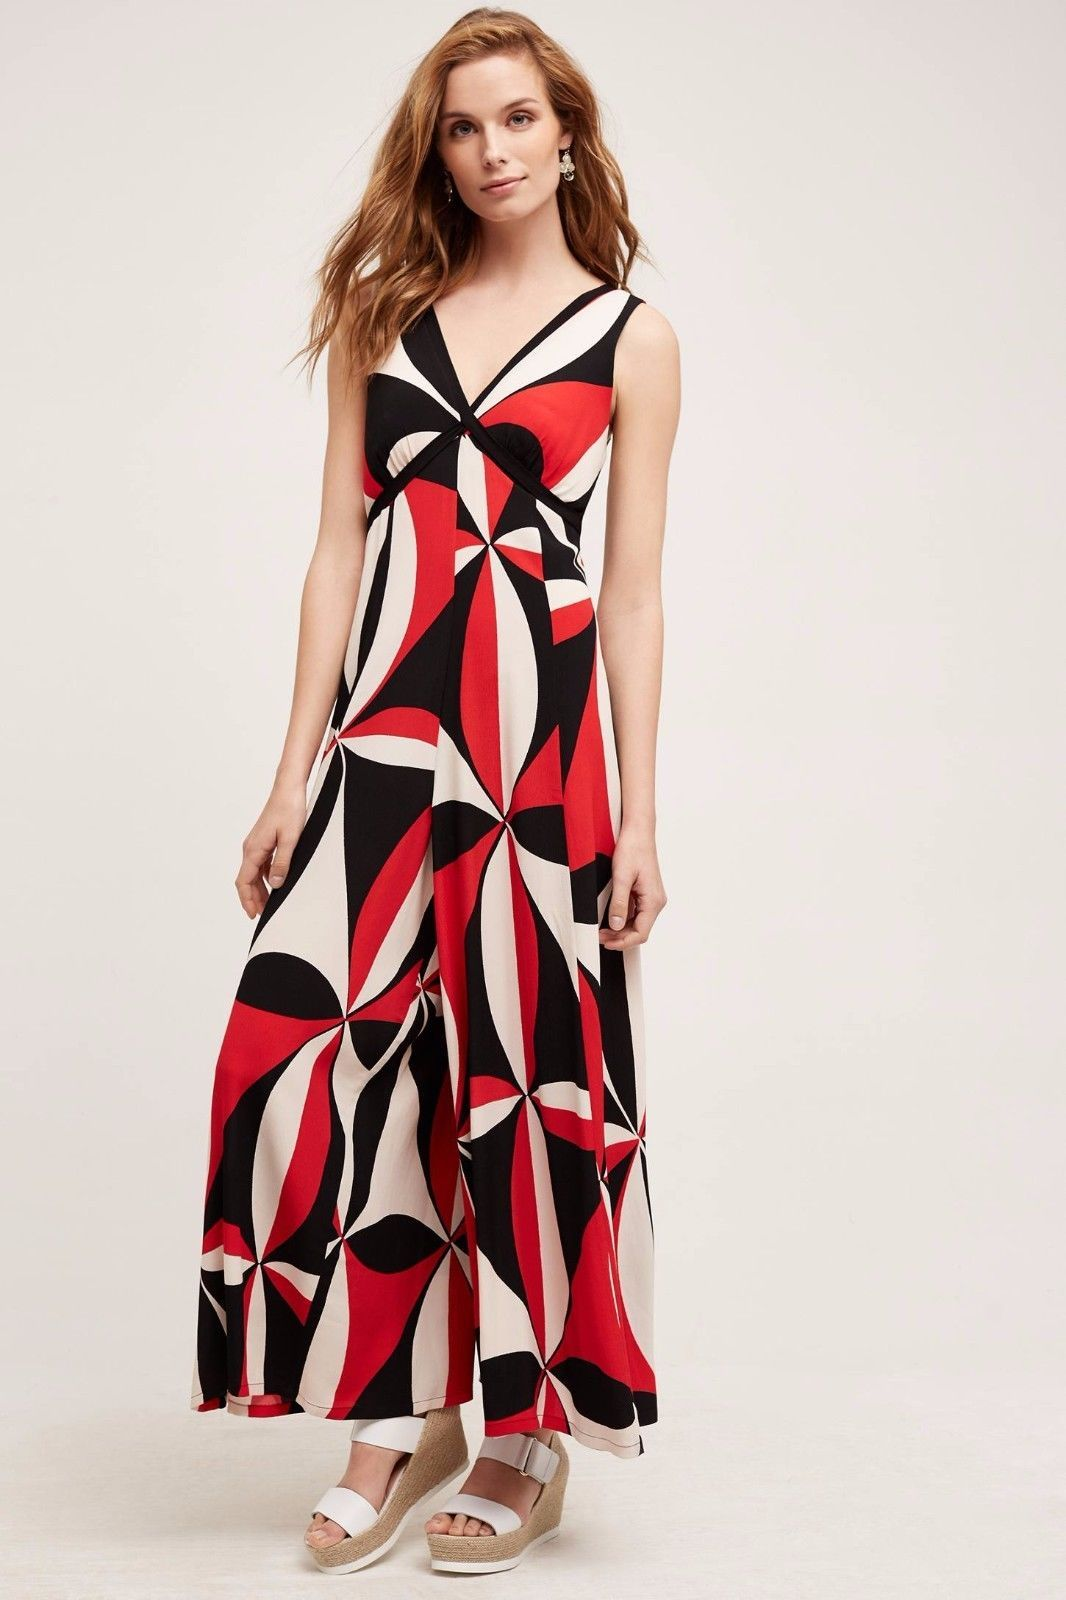 NWT ANTHROPOLOGIE TALLULAH WIDE-LEG JUMPSUIT by HD in PARIS 2